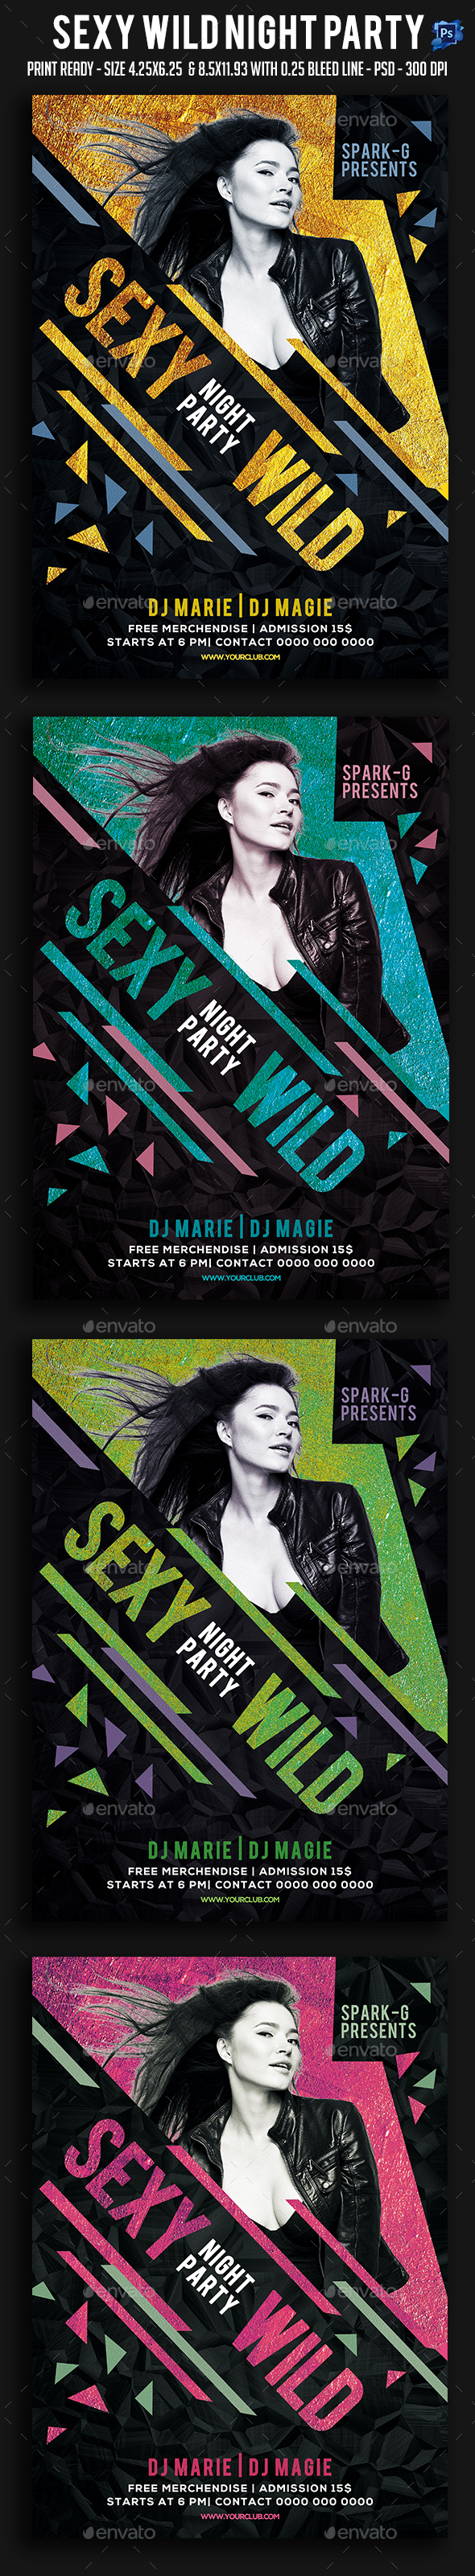 Sexy Wild Night Party Flyer - Clubs & Parties Events